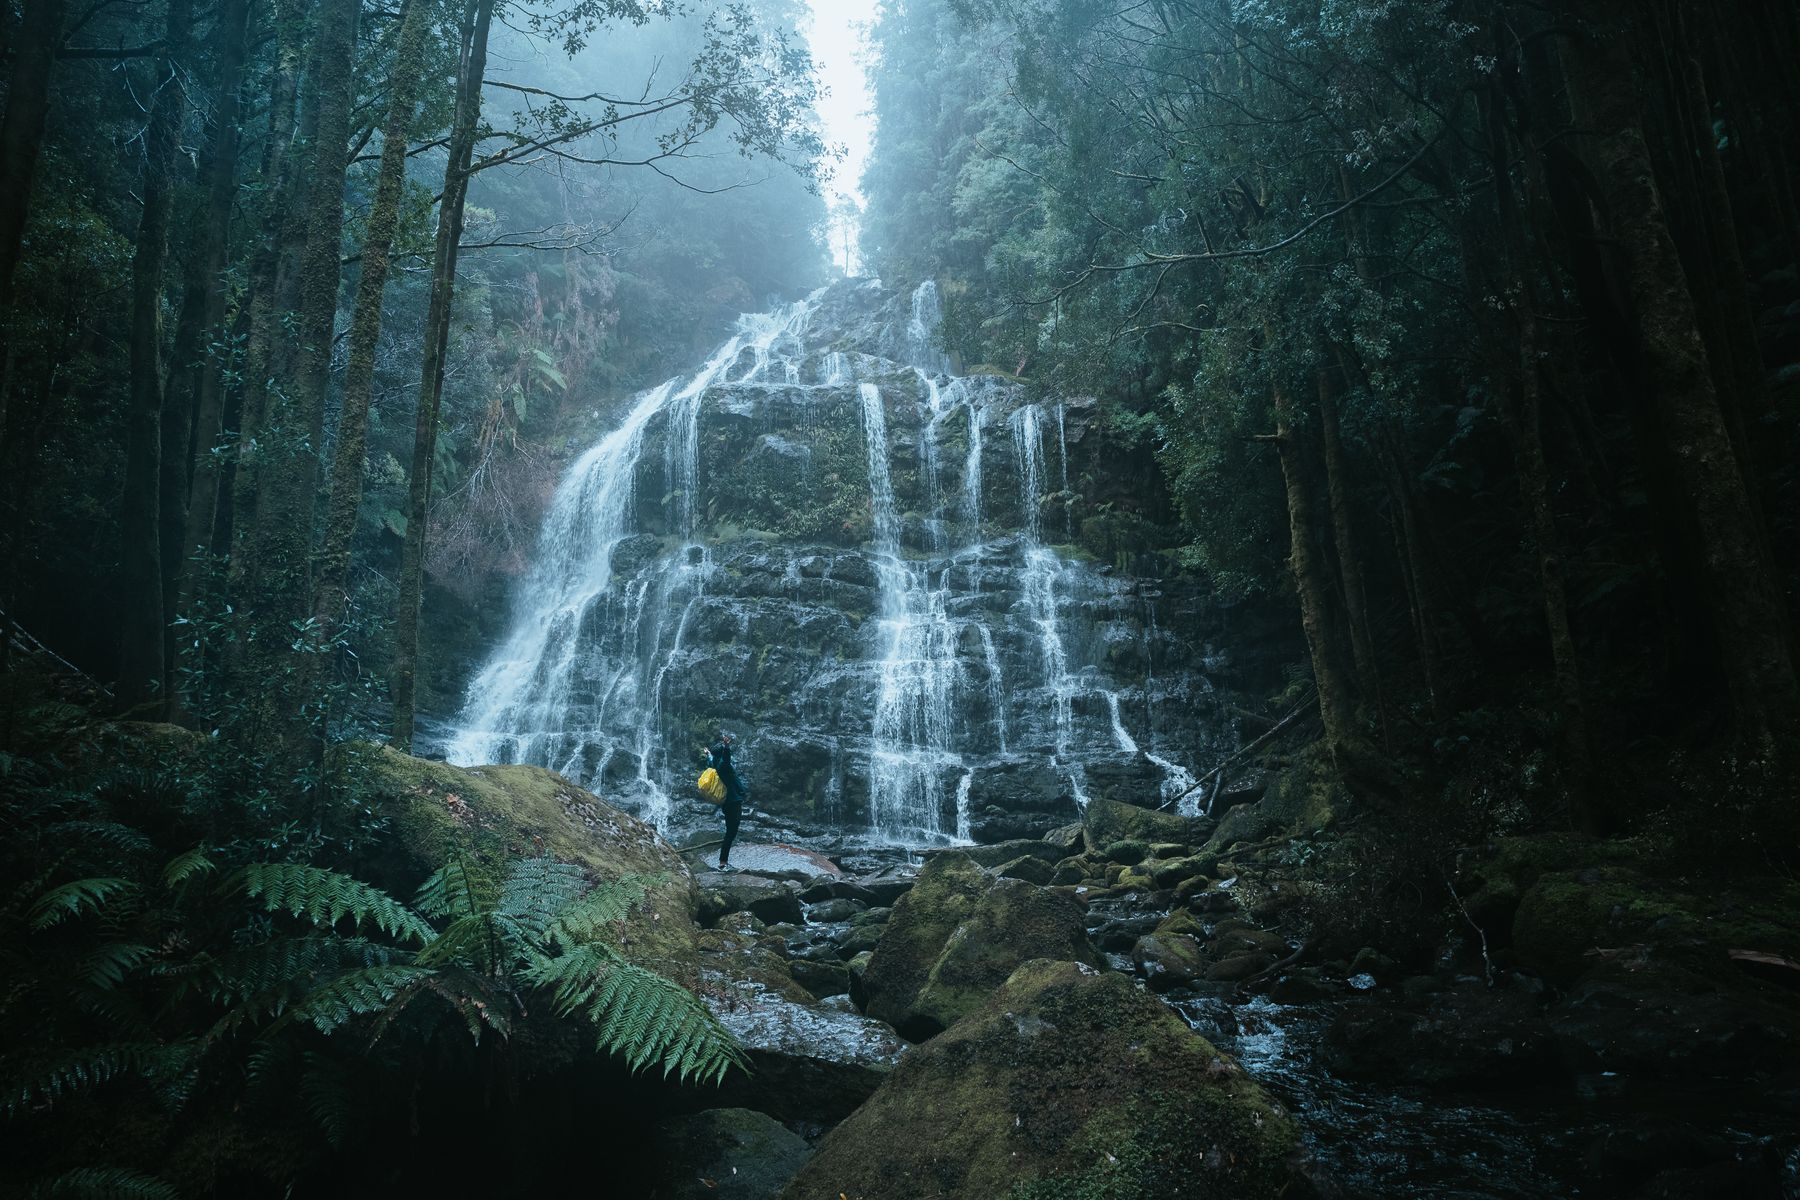 The Nelson Falls in Wild Rivers National Park